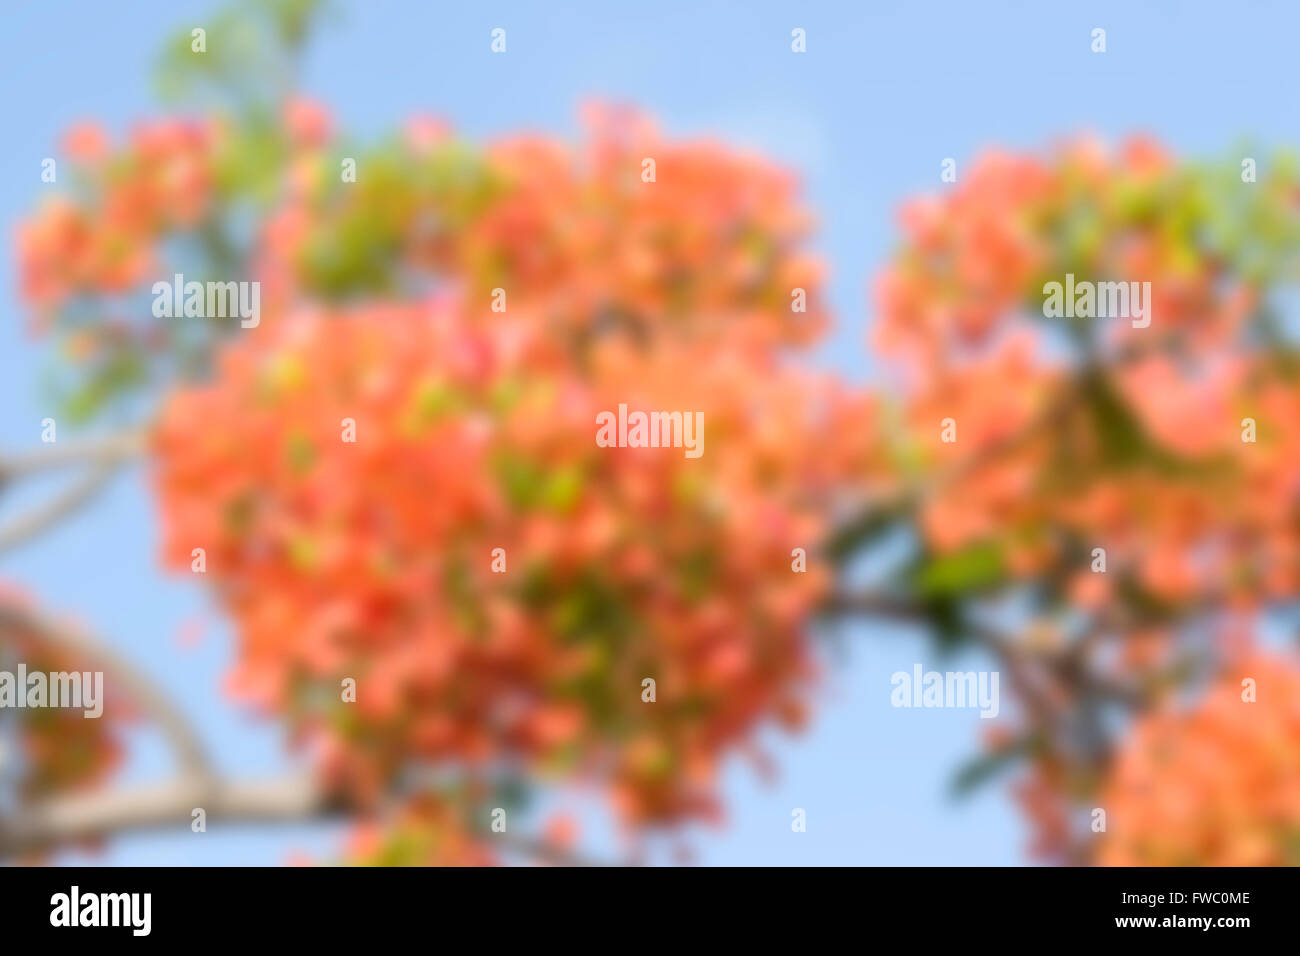 Blurred royal poinciana flowers for background use - Stock Image